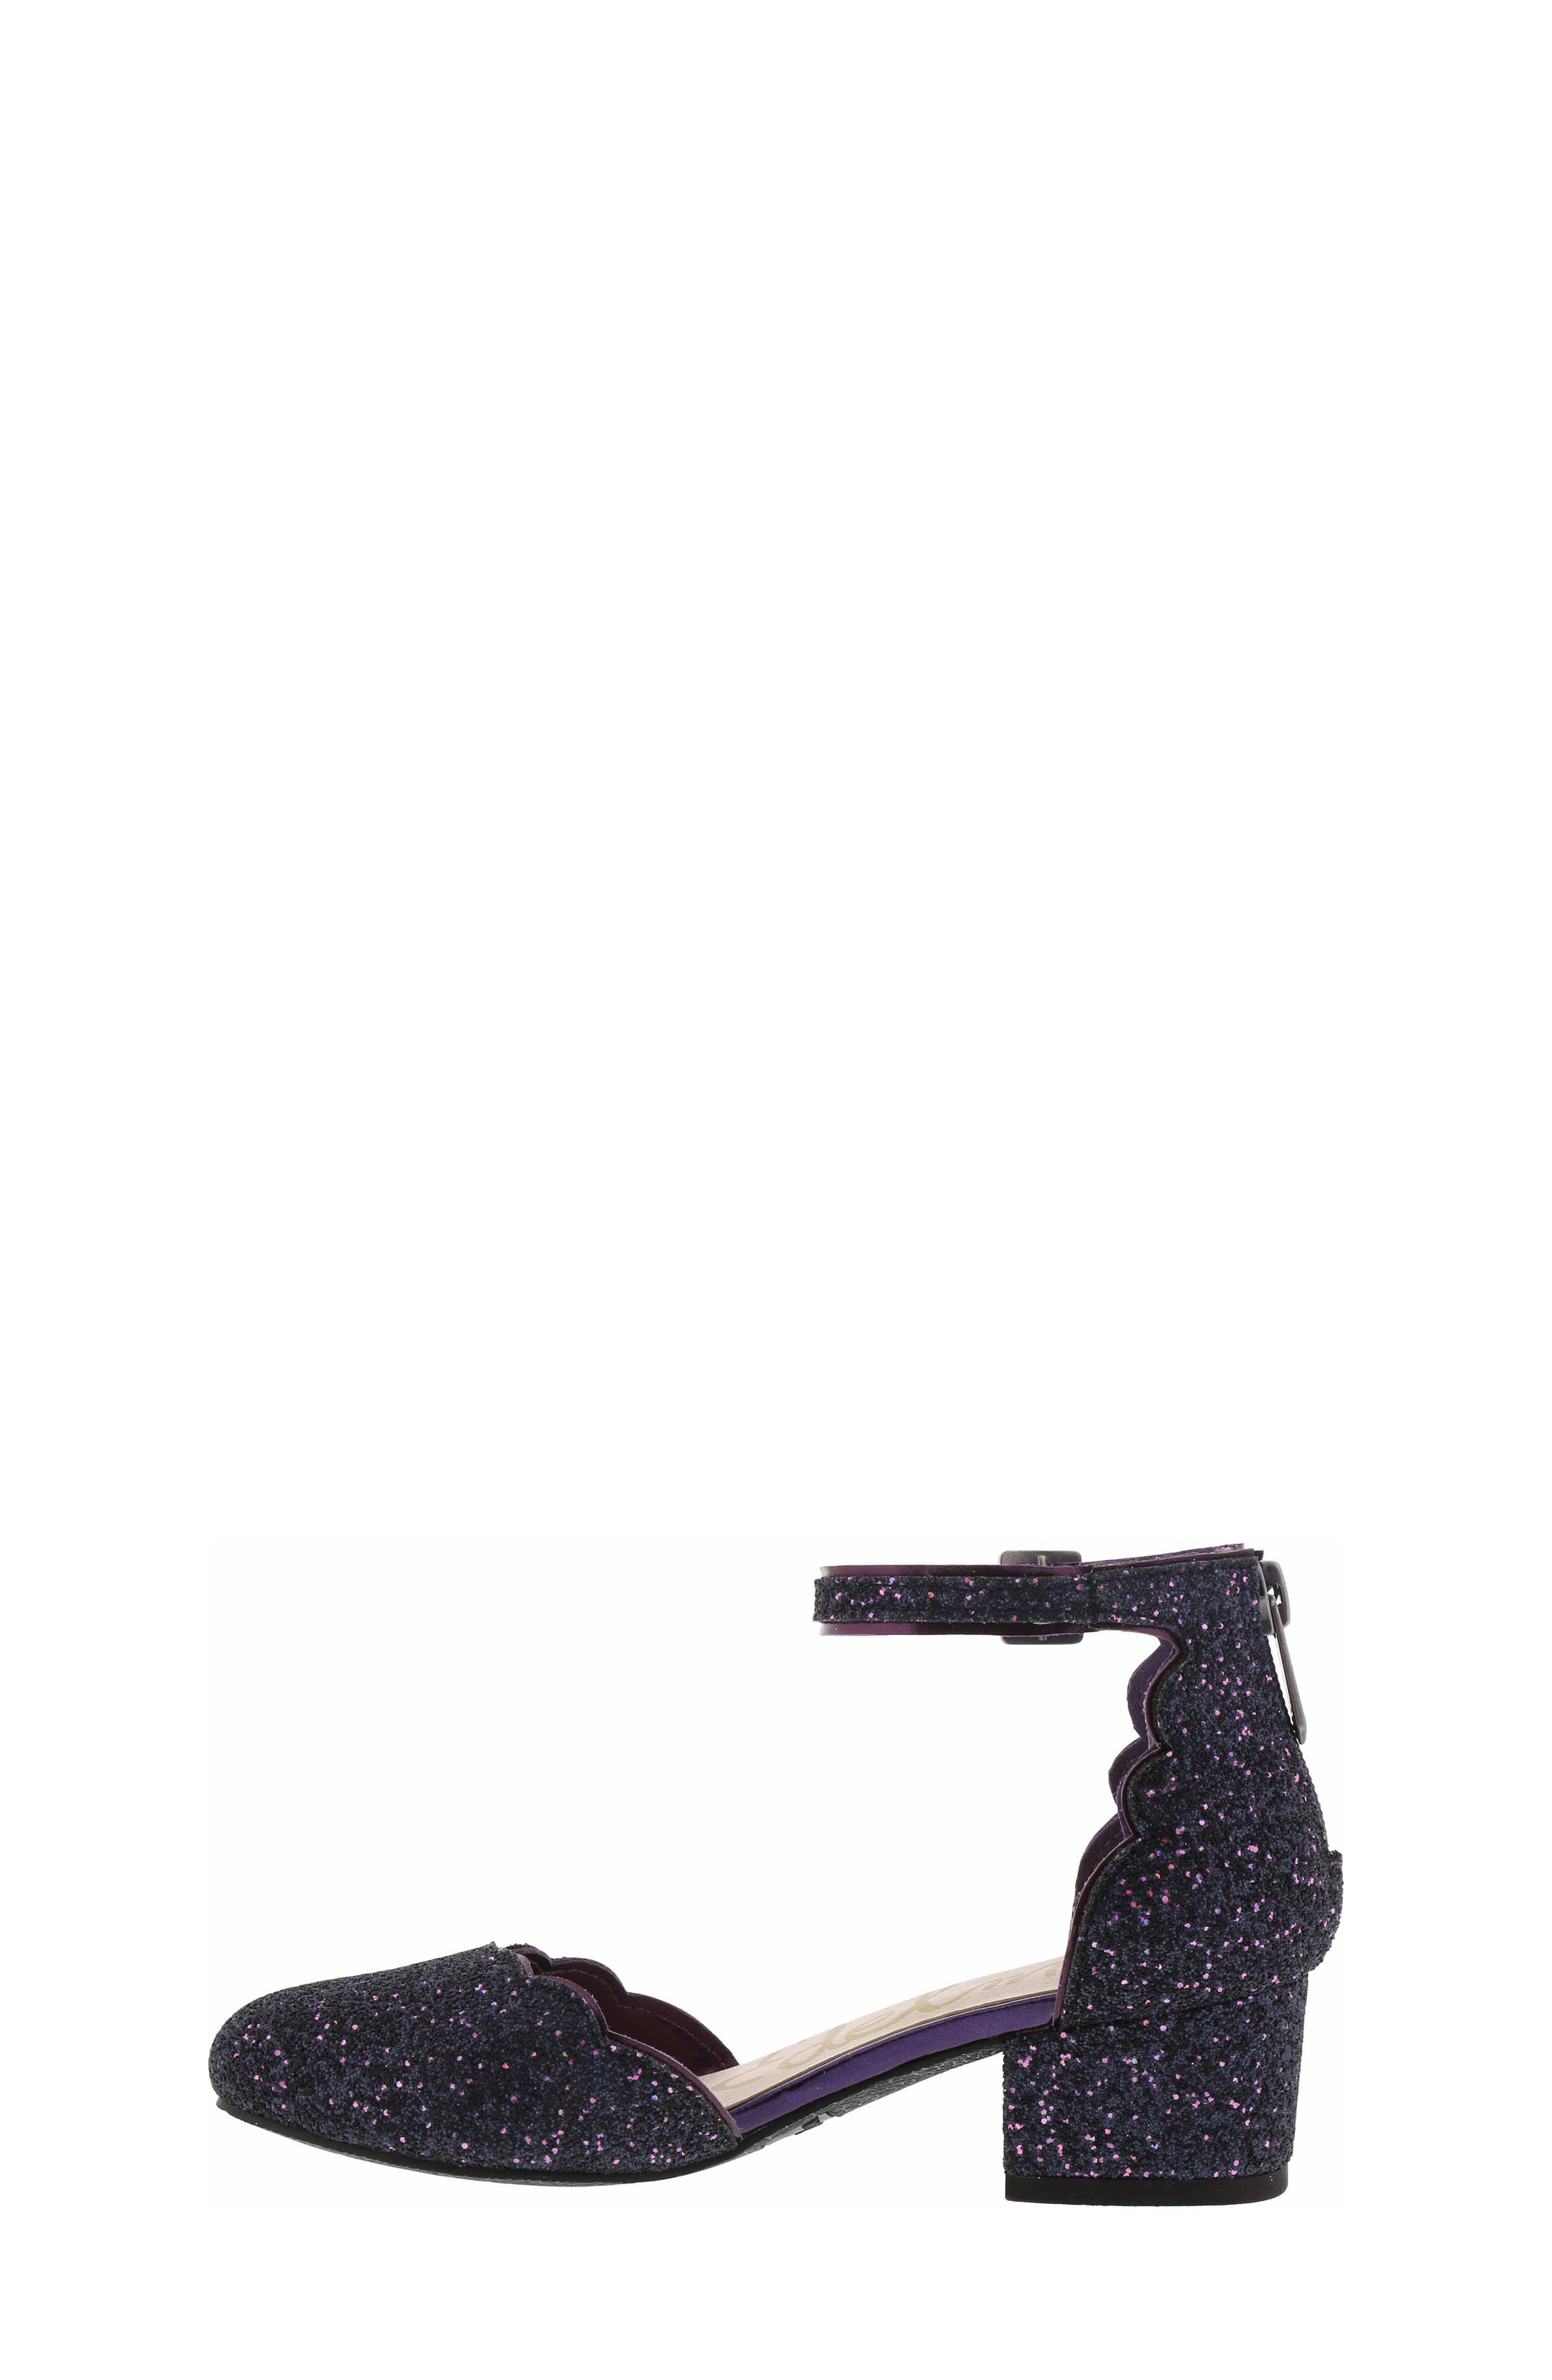 Evelyn Inara Glitter Ankle Strap Pump,                             Alternate thumbnail 7, color,                             PURPLE MULTI